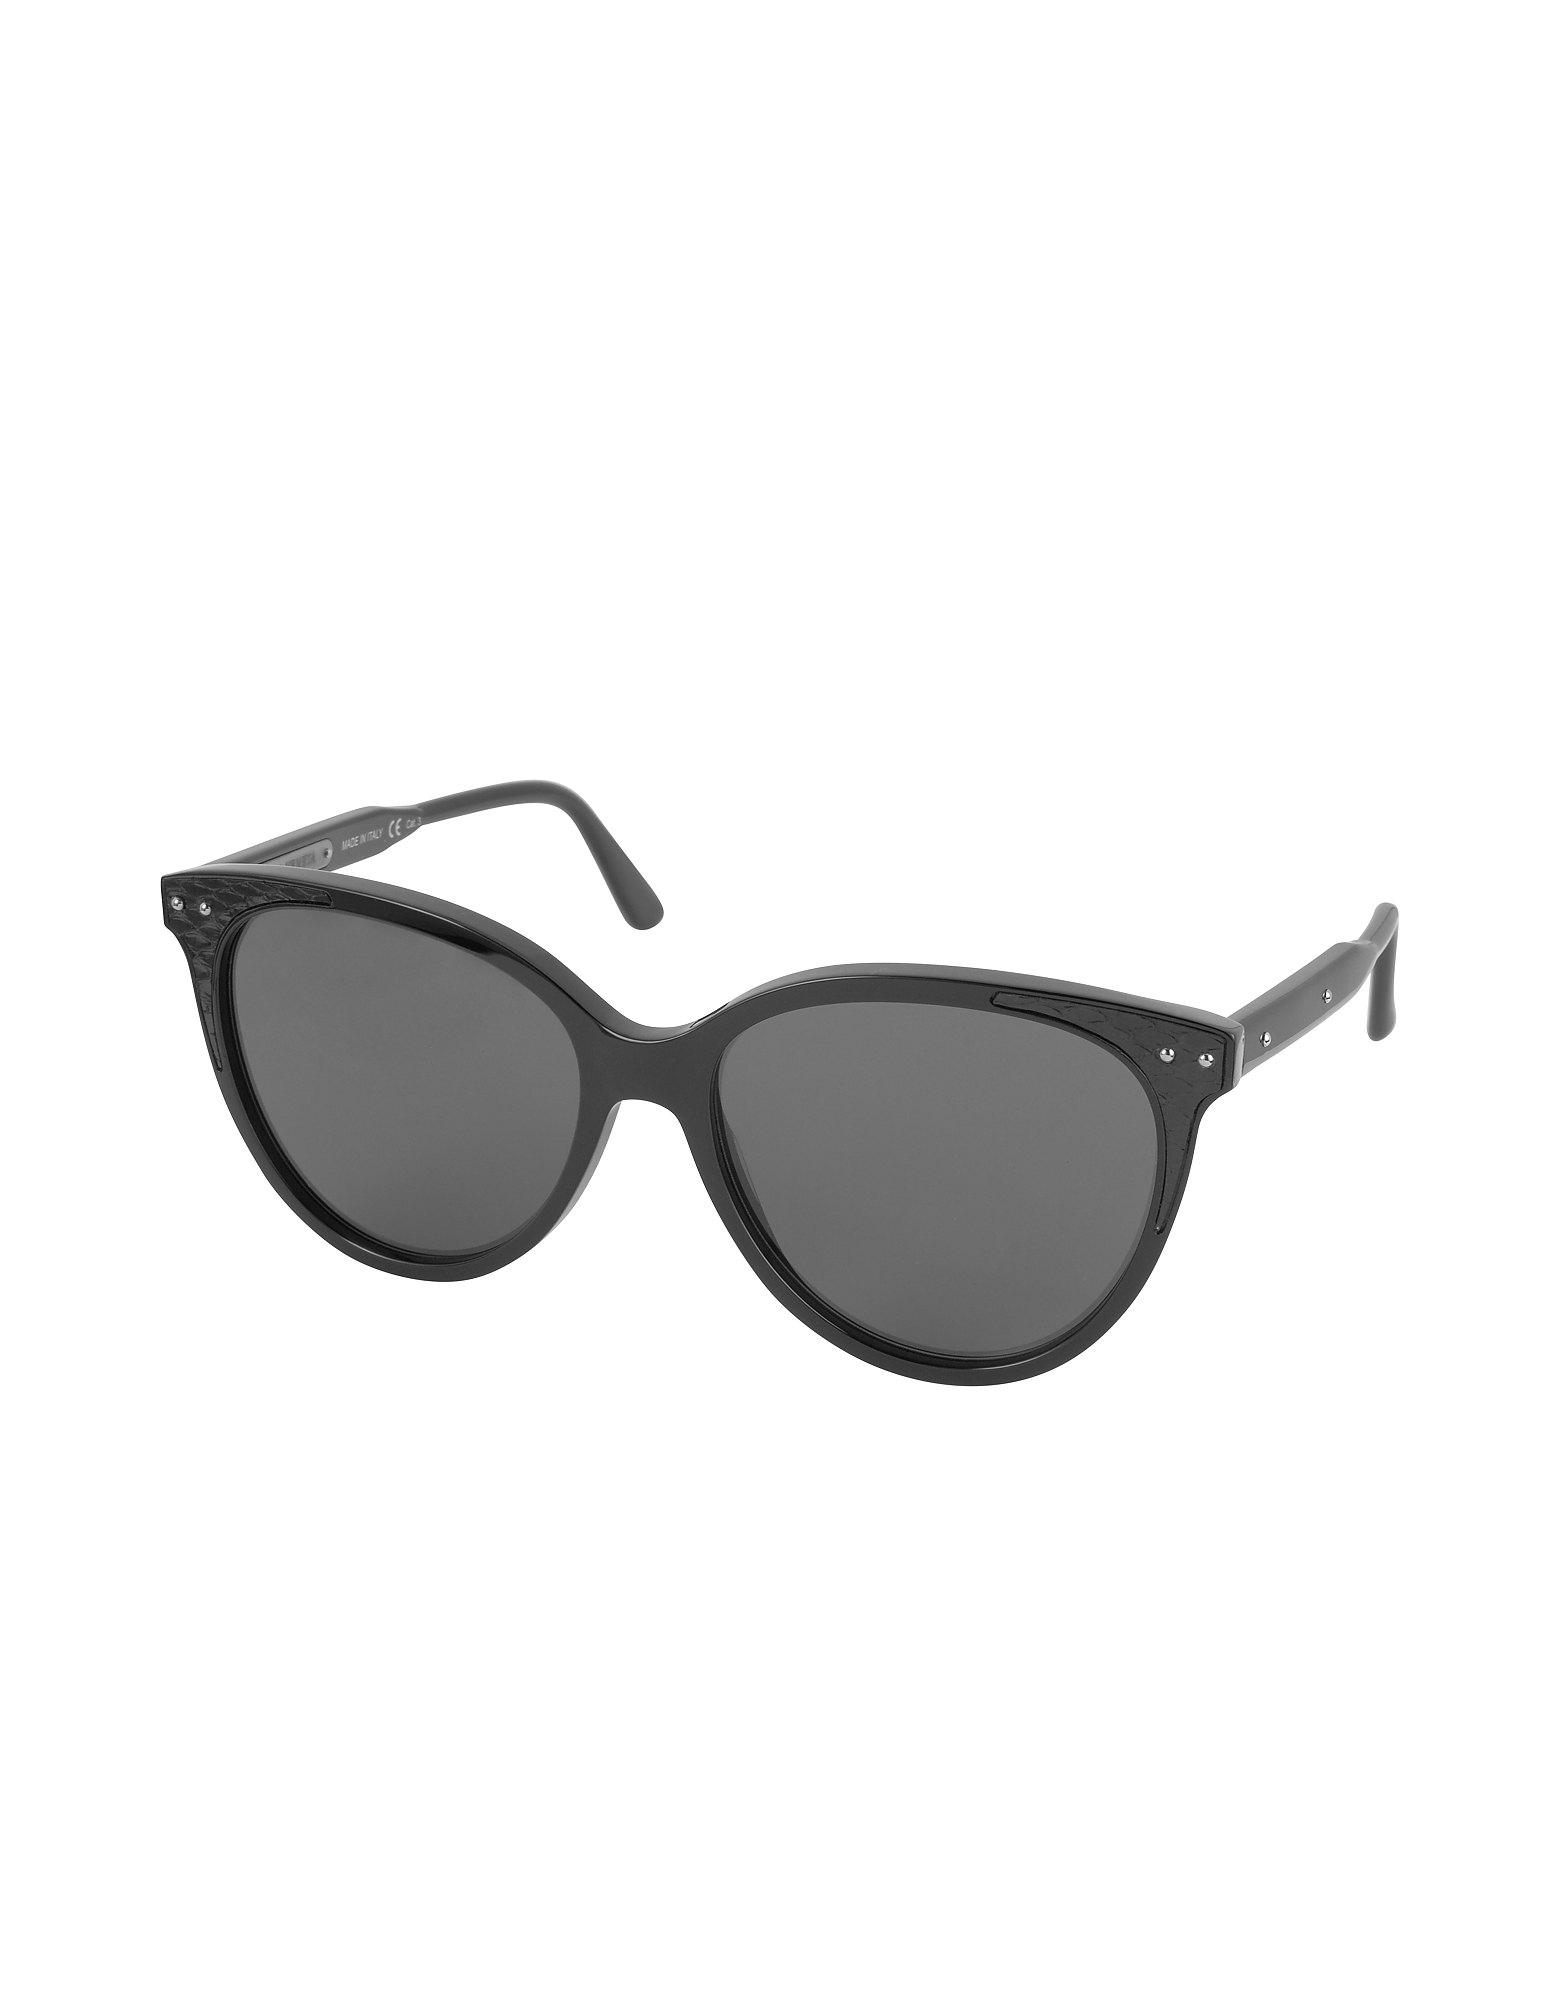 BV0119S Acetate Cat-Eye Frame Women's Sunglasses от Forzieri.com INT